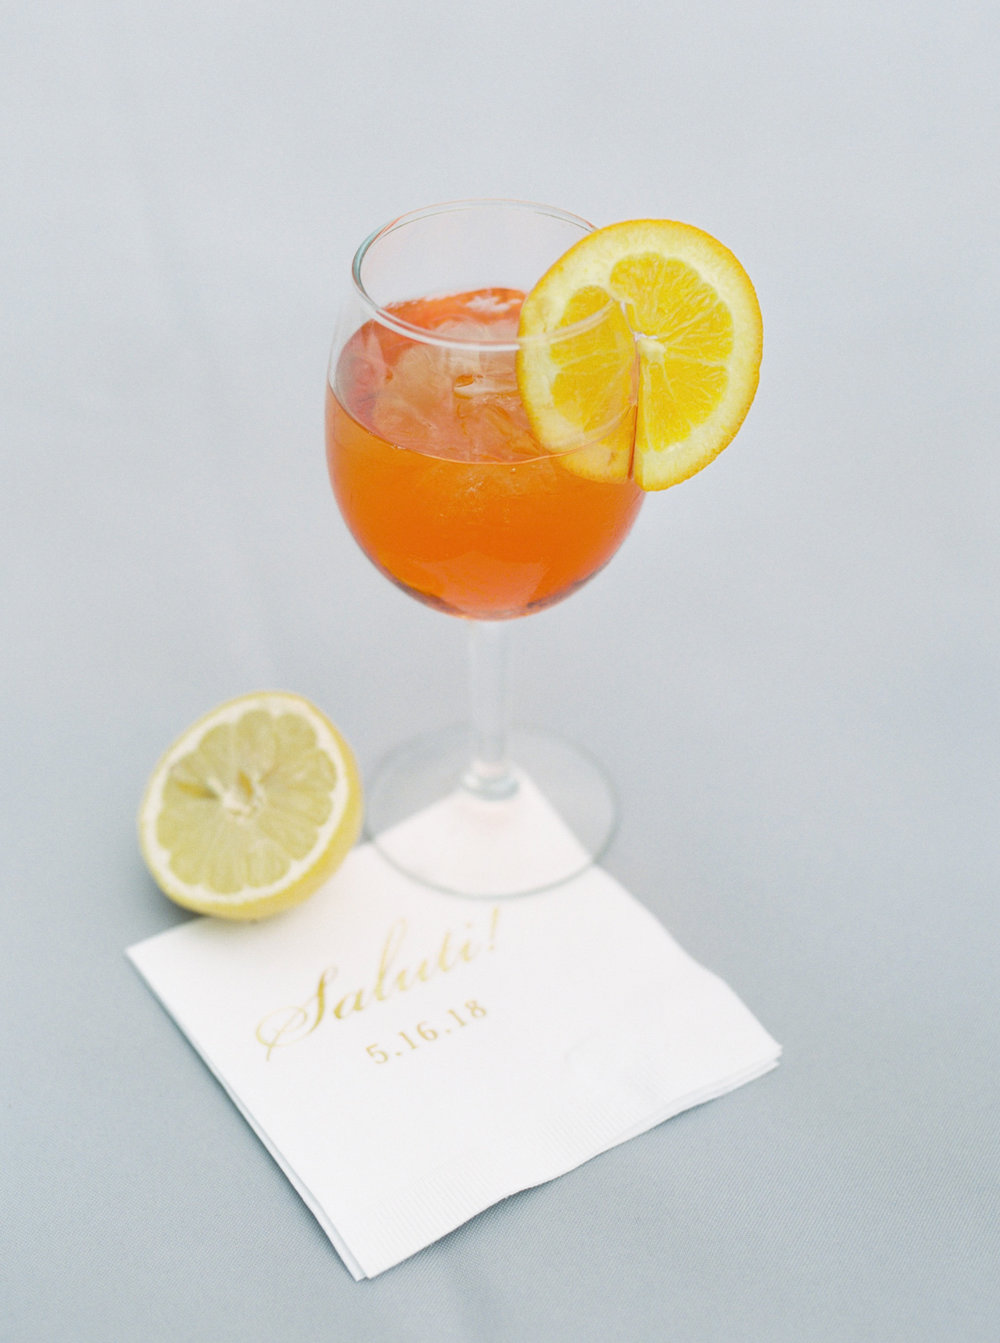 This bright citrus signature cocktail from Kerry and Bill's Italian themed wedding day at the Baltimore Country Club is so fun. We love the pop of orange and yellow against the neutral whites of the tented space.